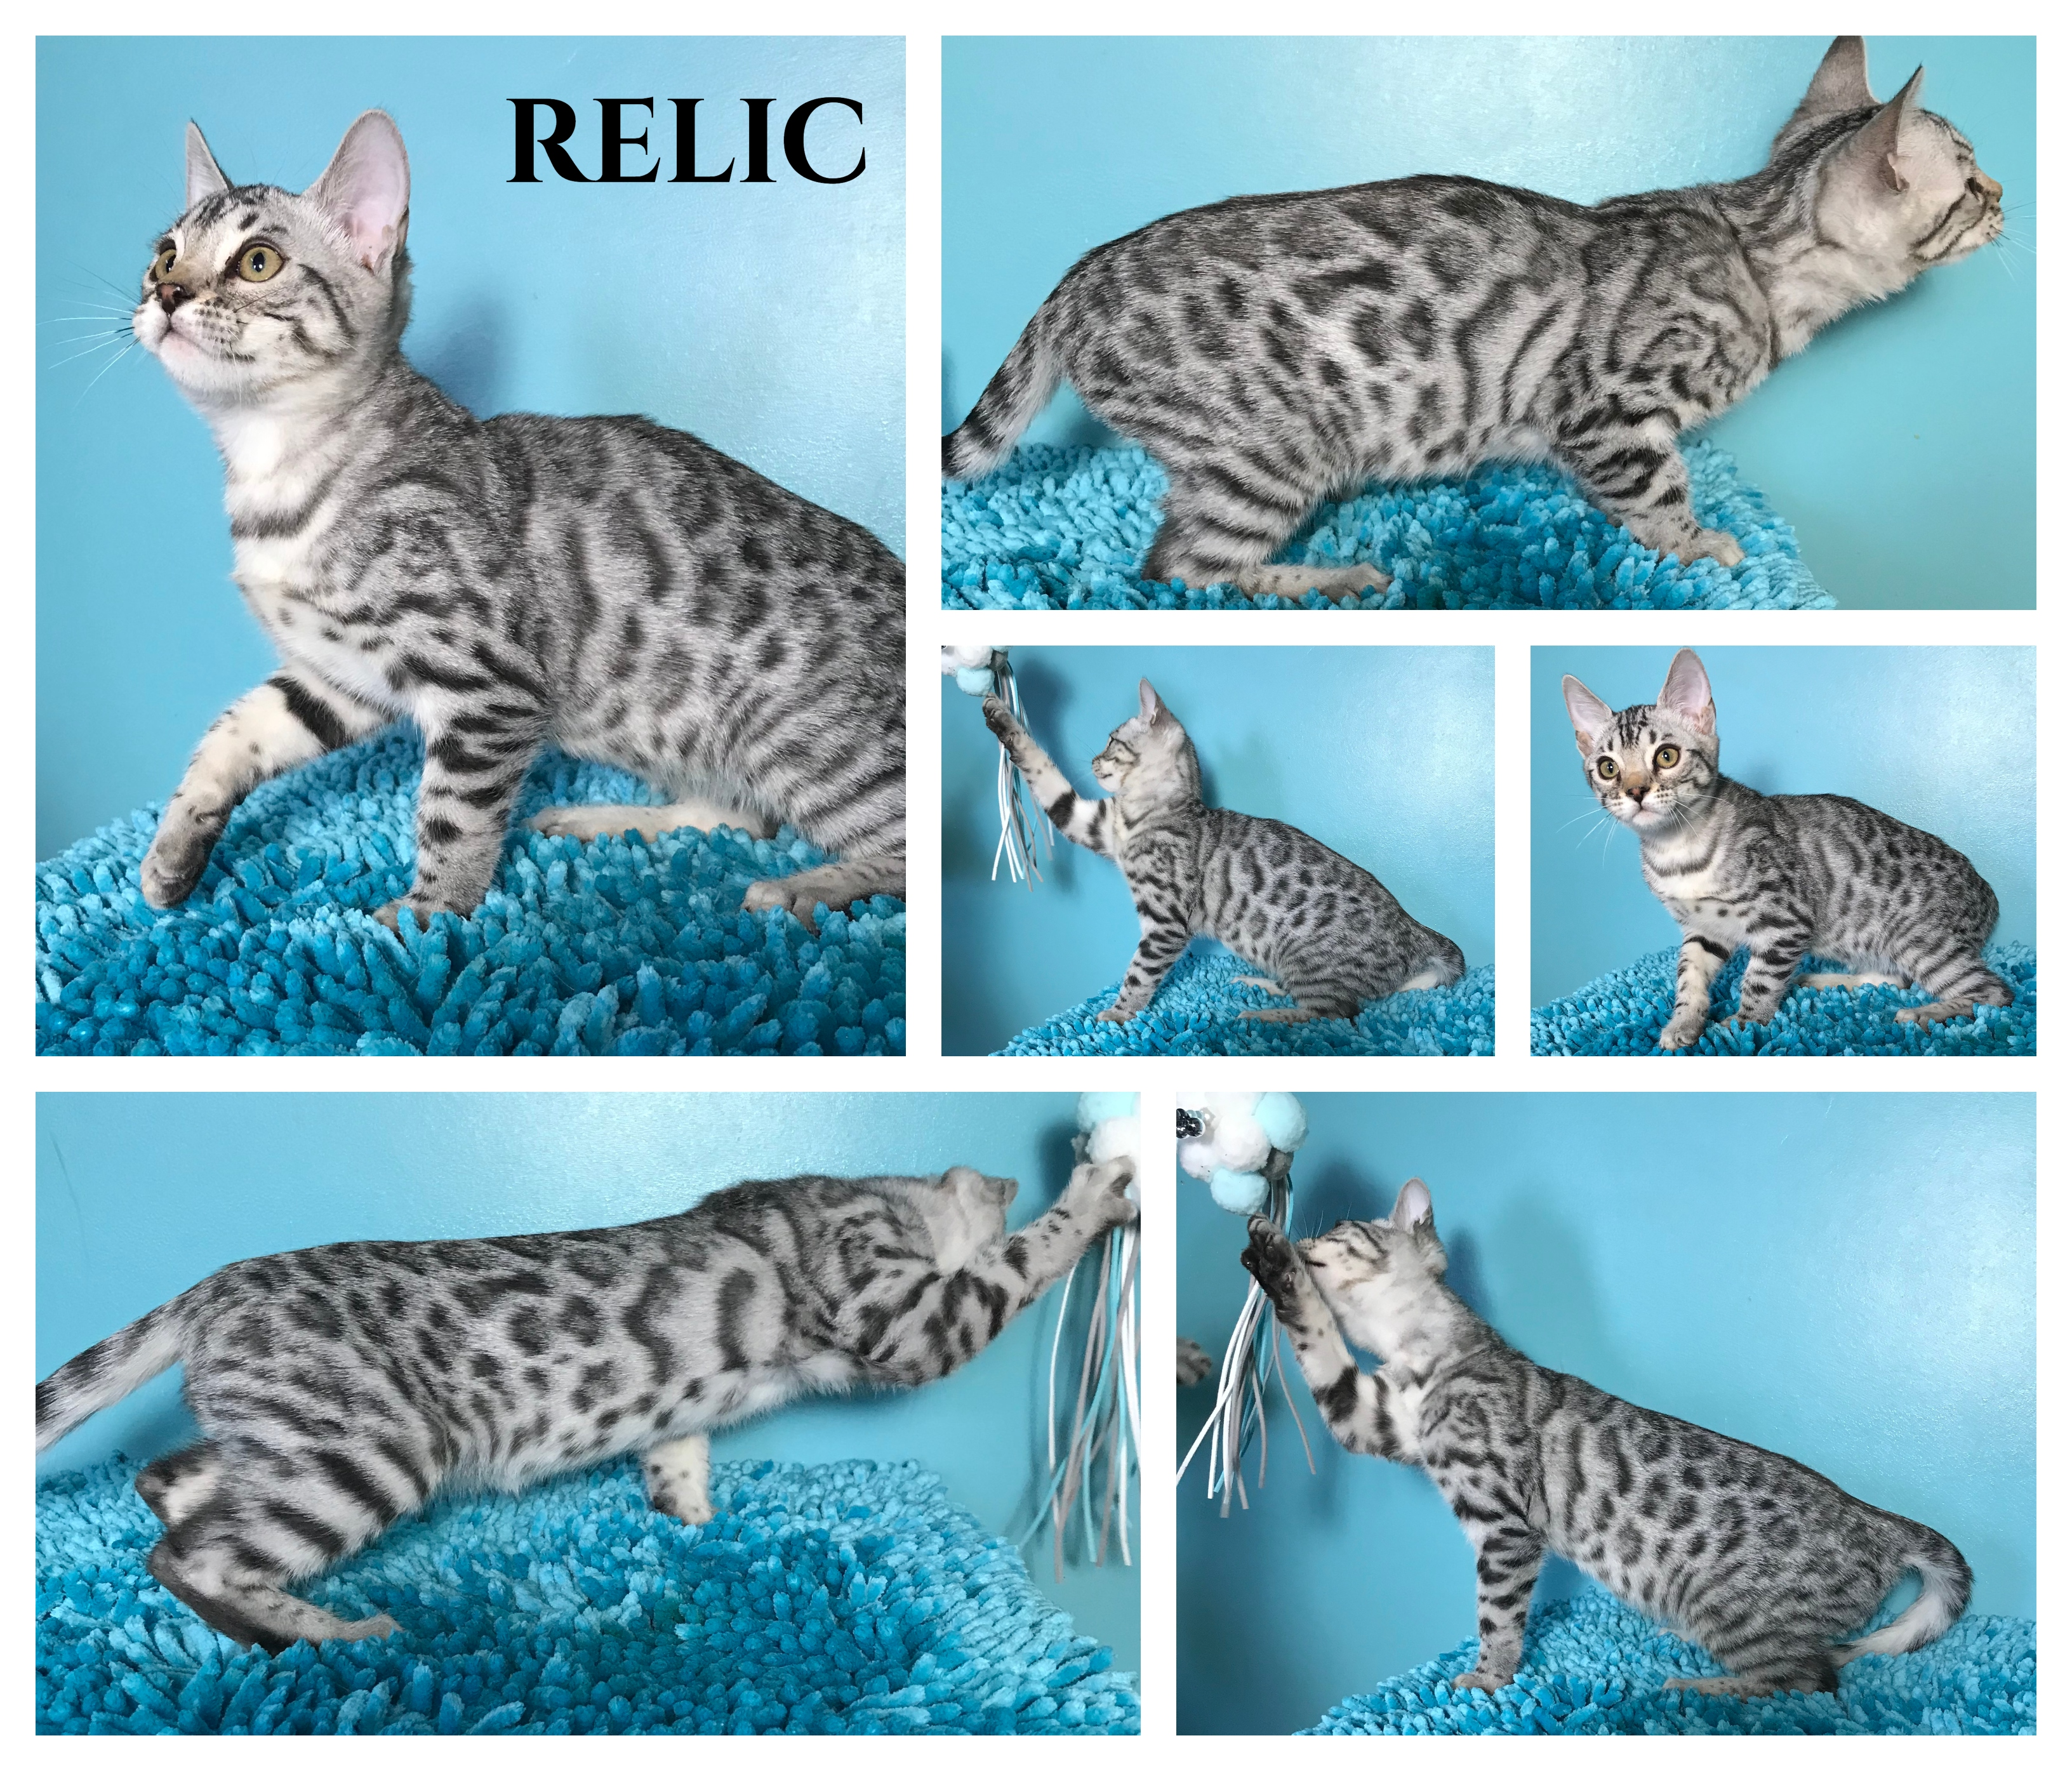 Relic 13 weeks